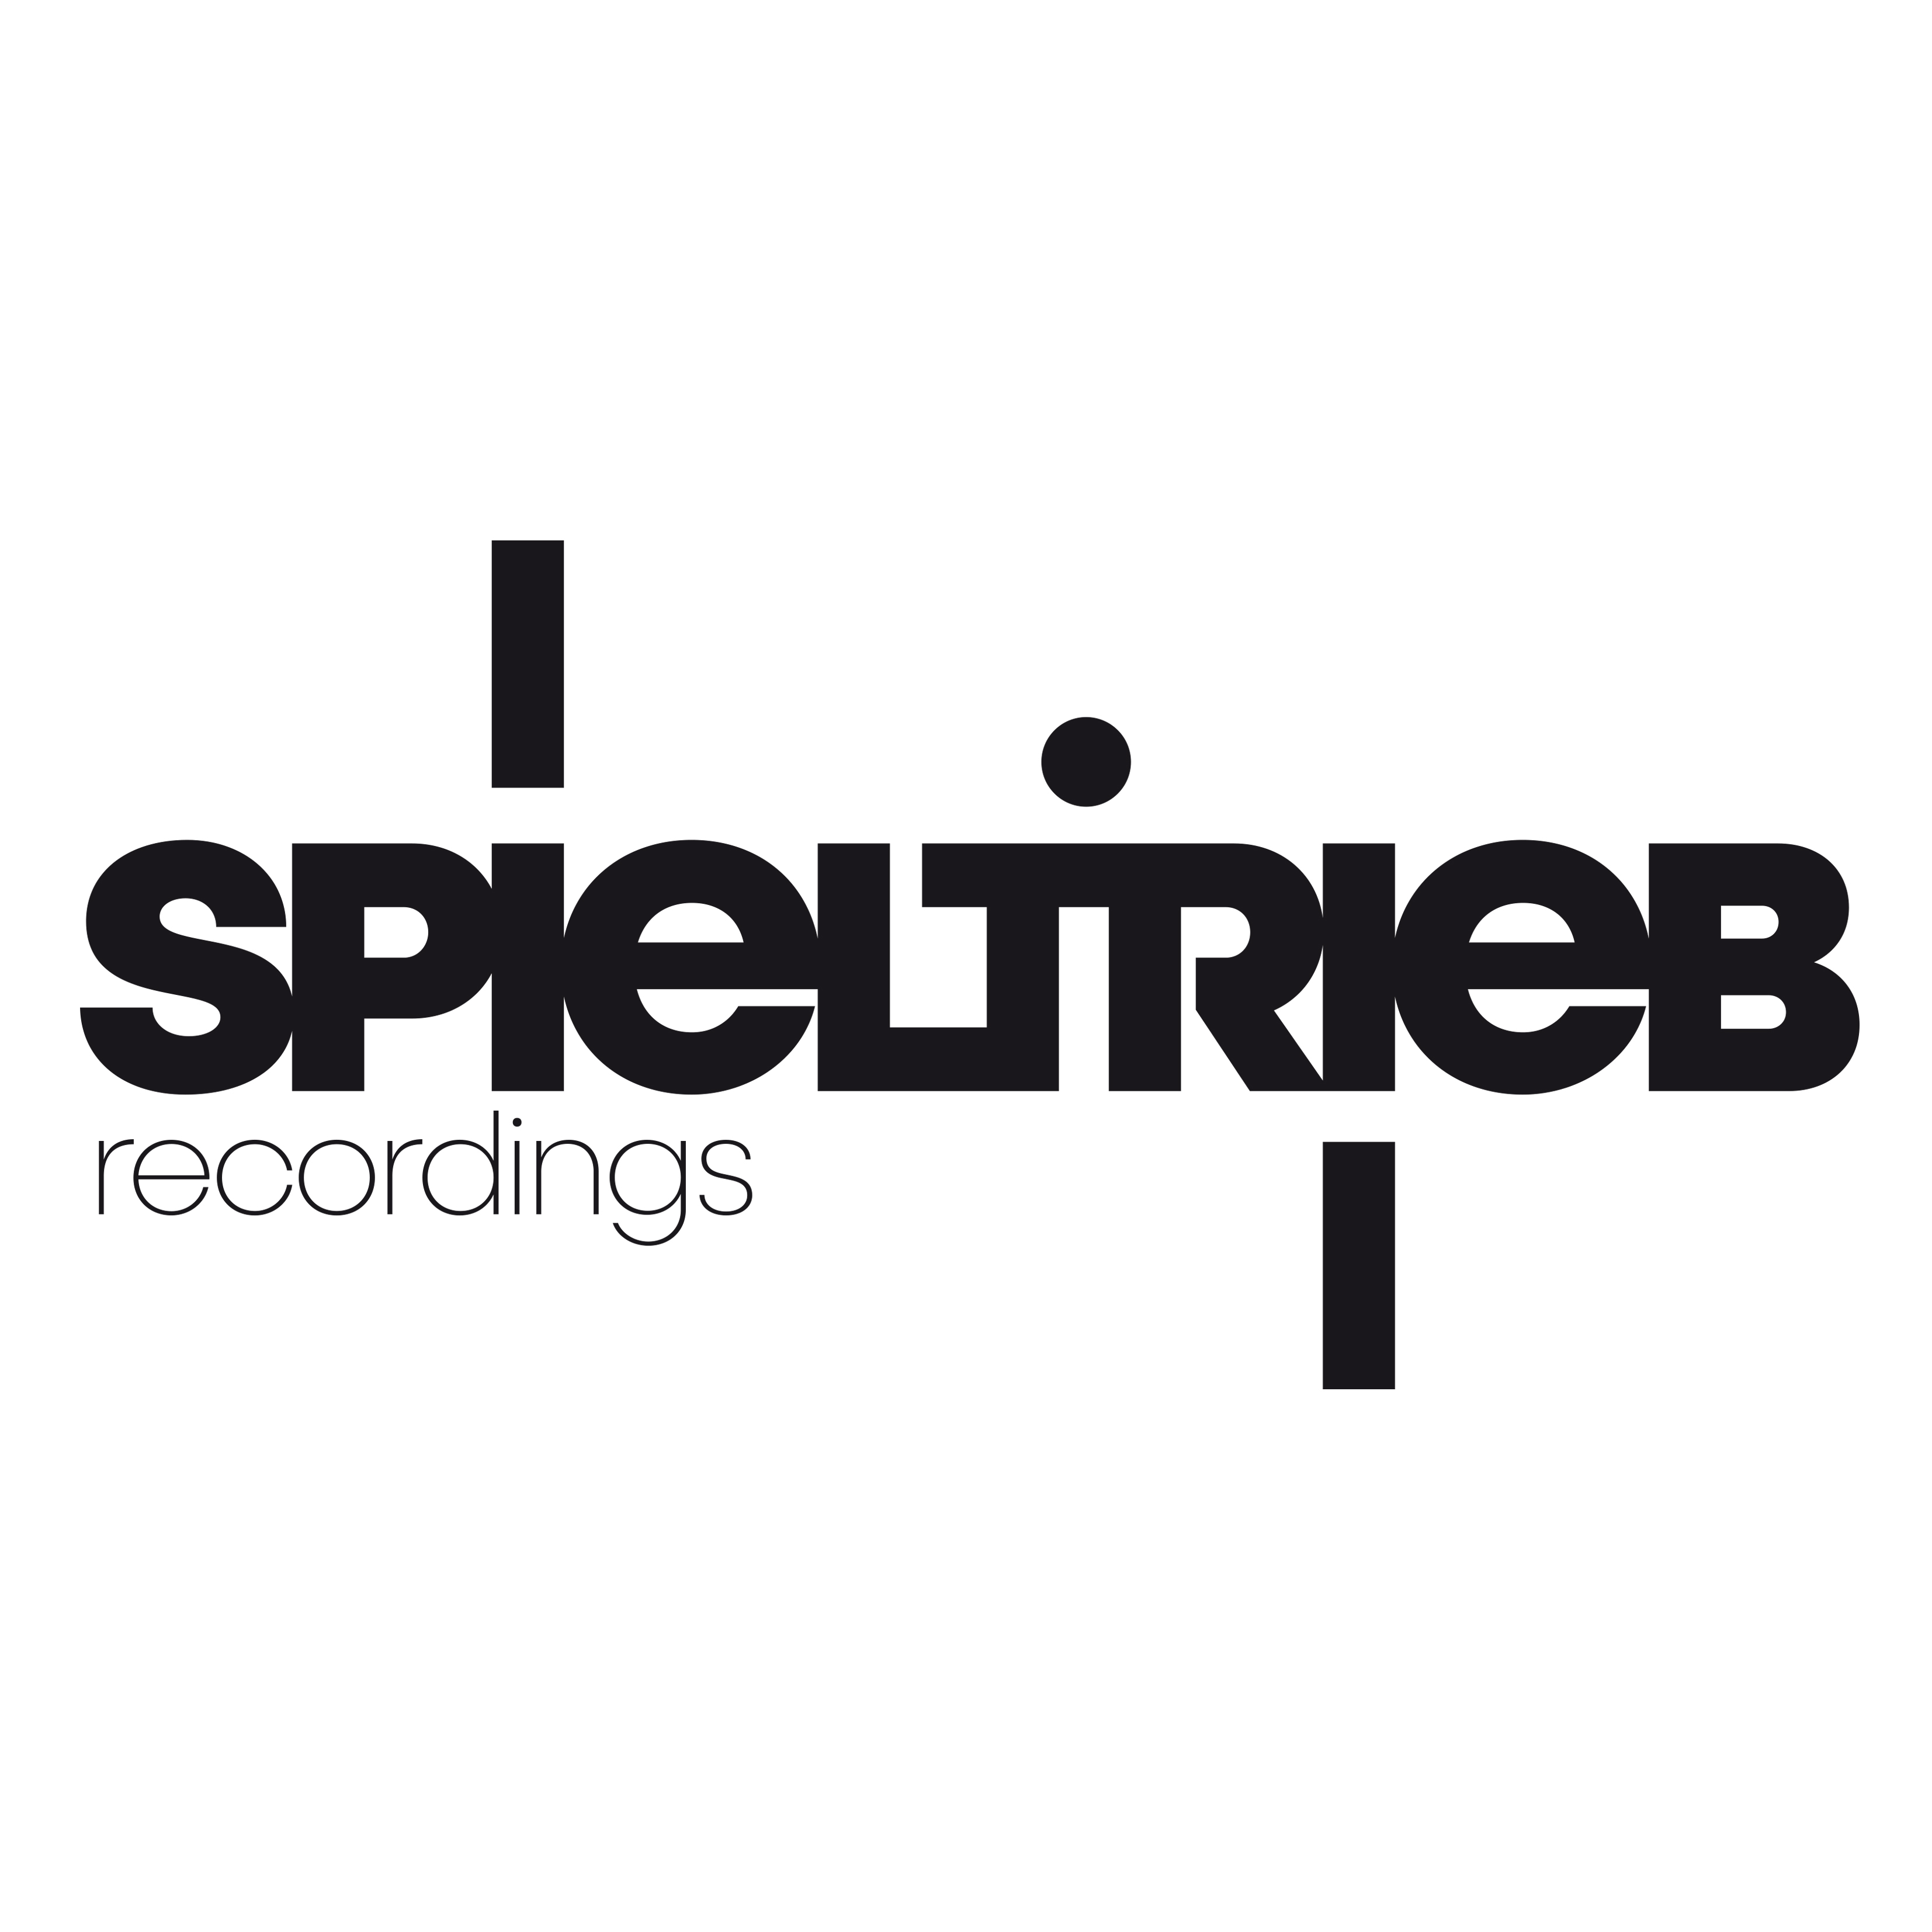 Spieltrieb Recordings